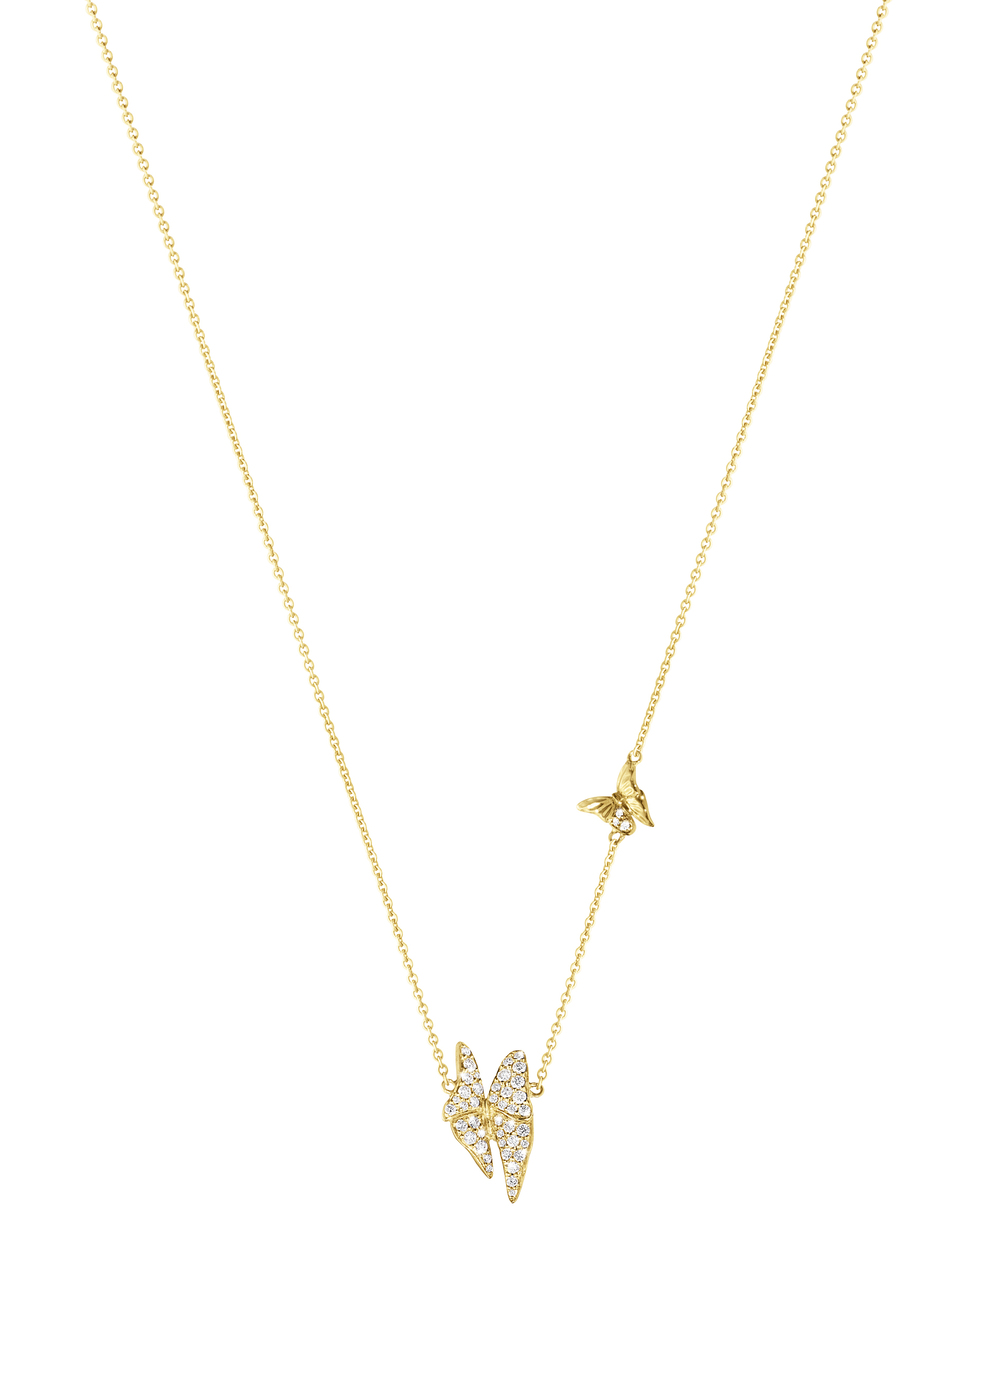 The Askill Collection for Georg Jensen  Butterfly necklace in 18K gold and diamonds.